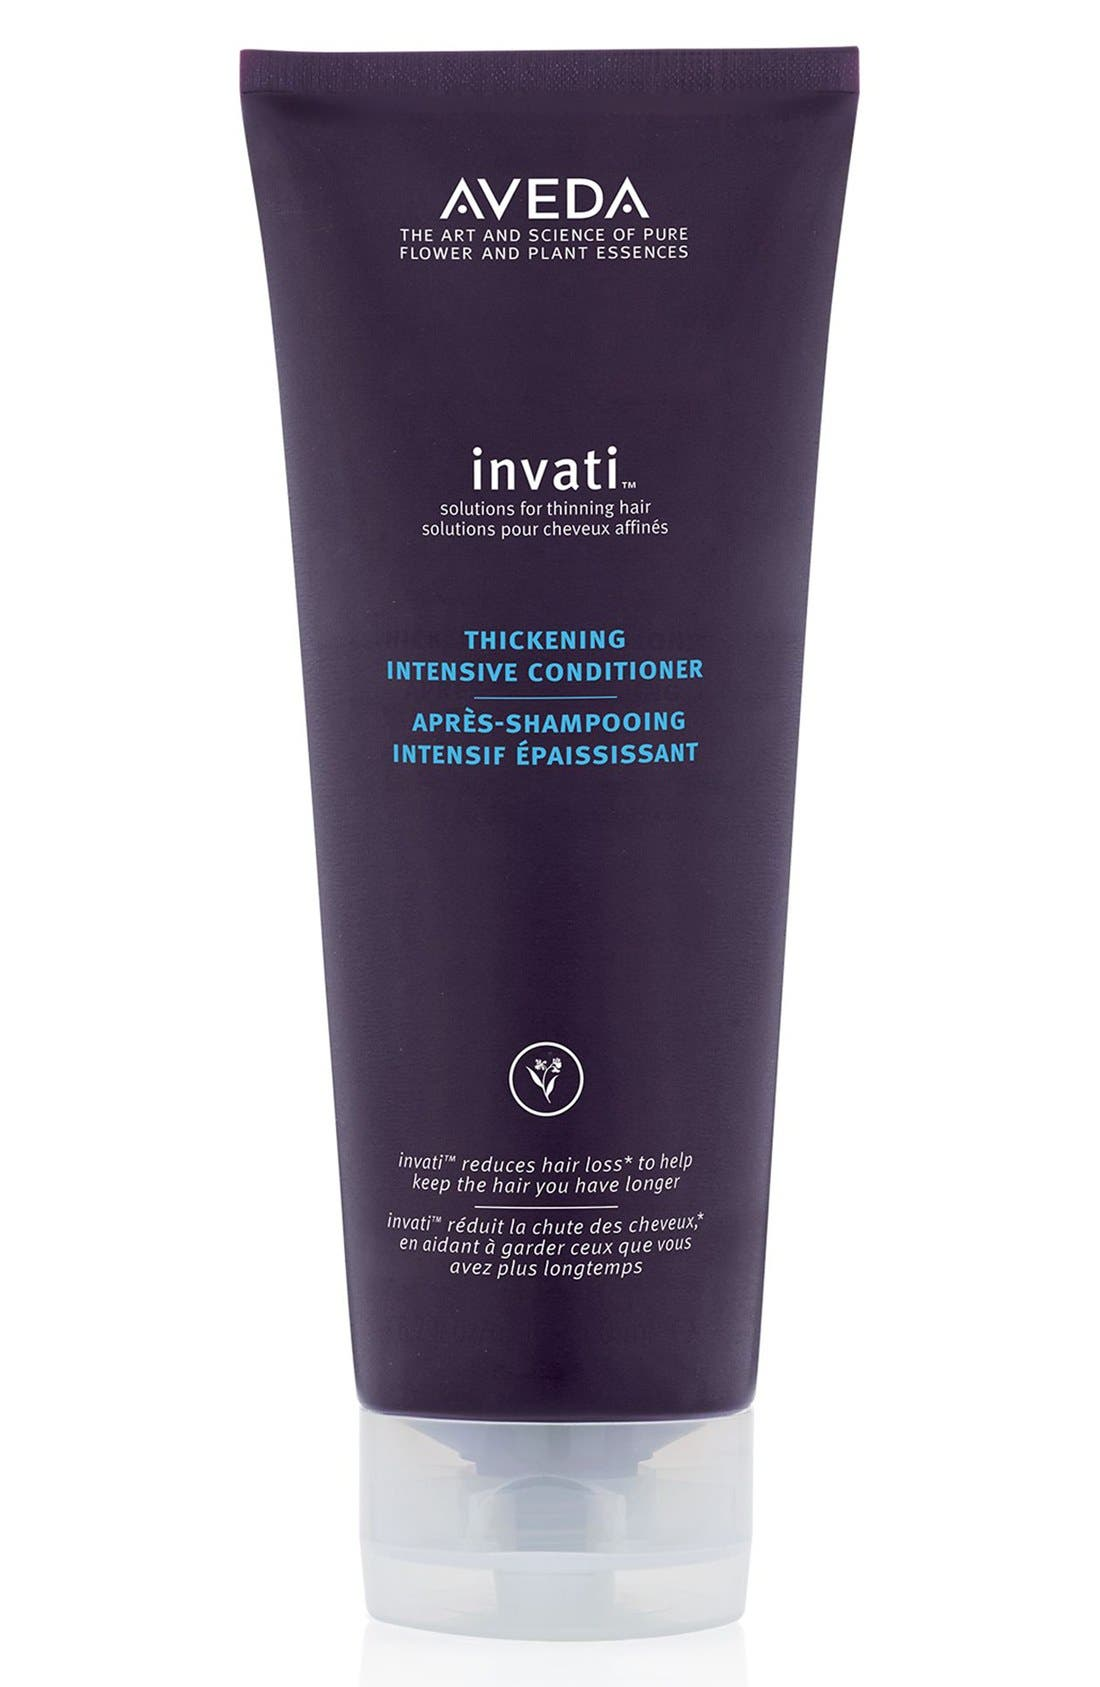 Aveda 'invati™' Thickening Intensive Conditioner